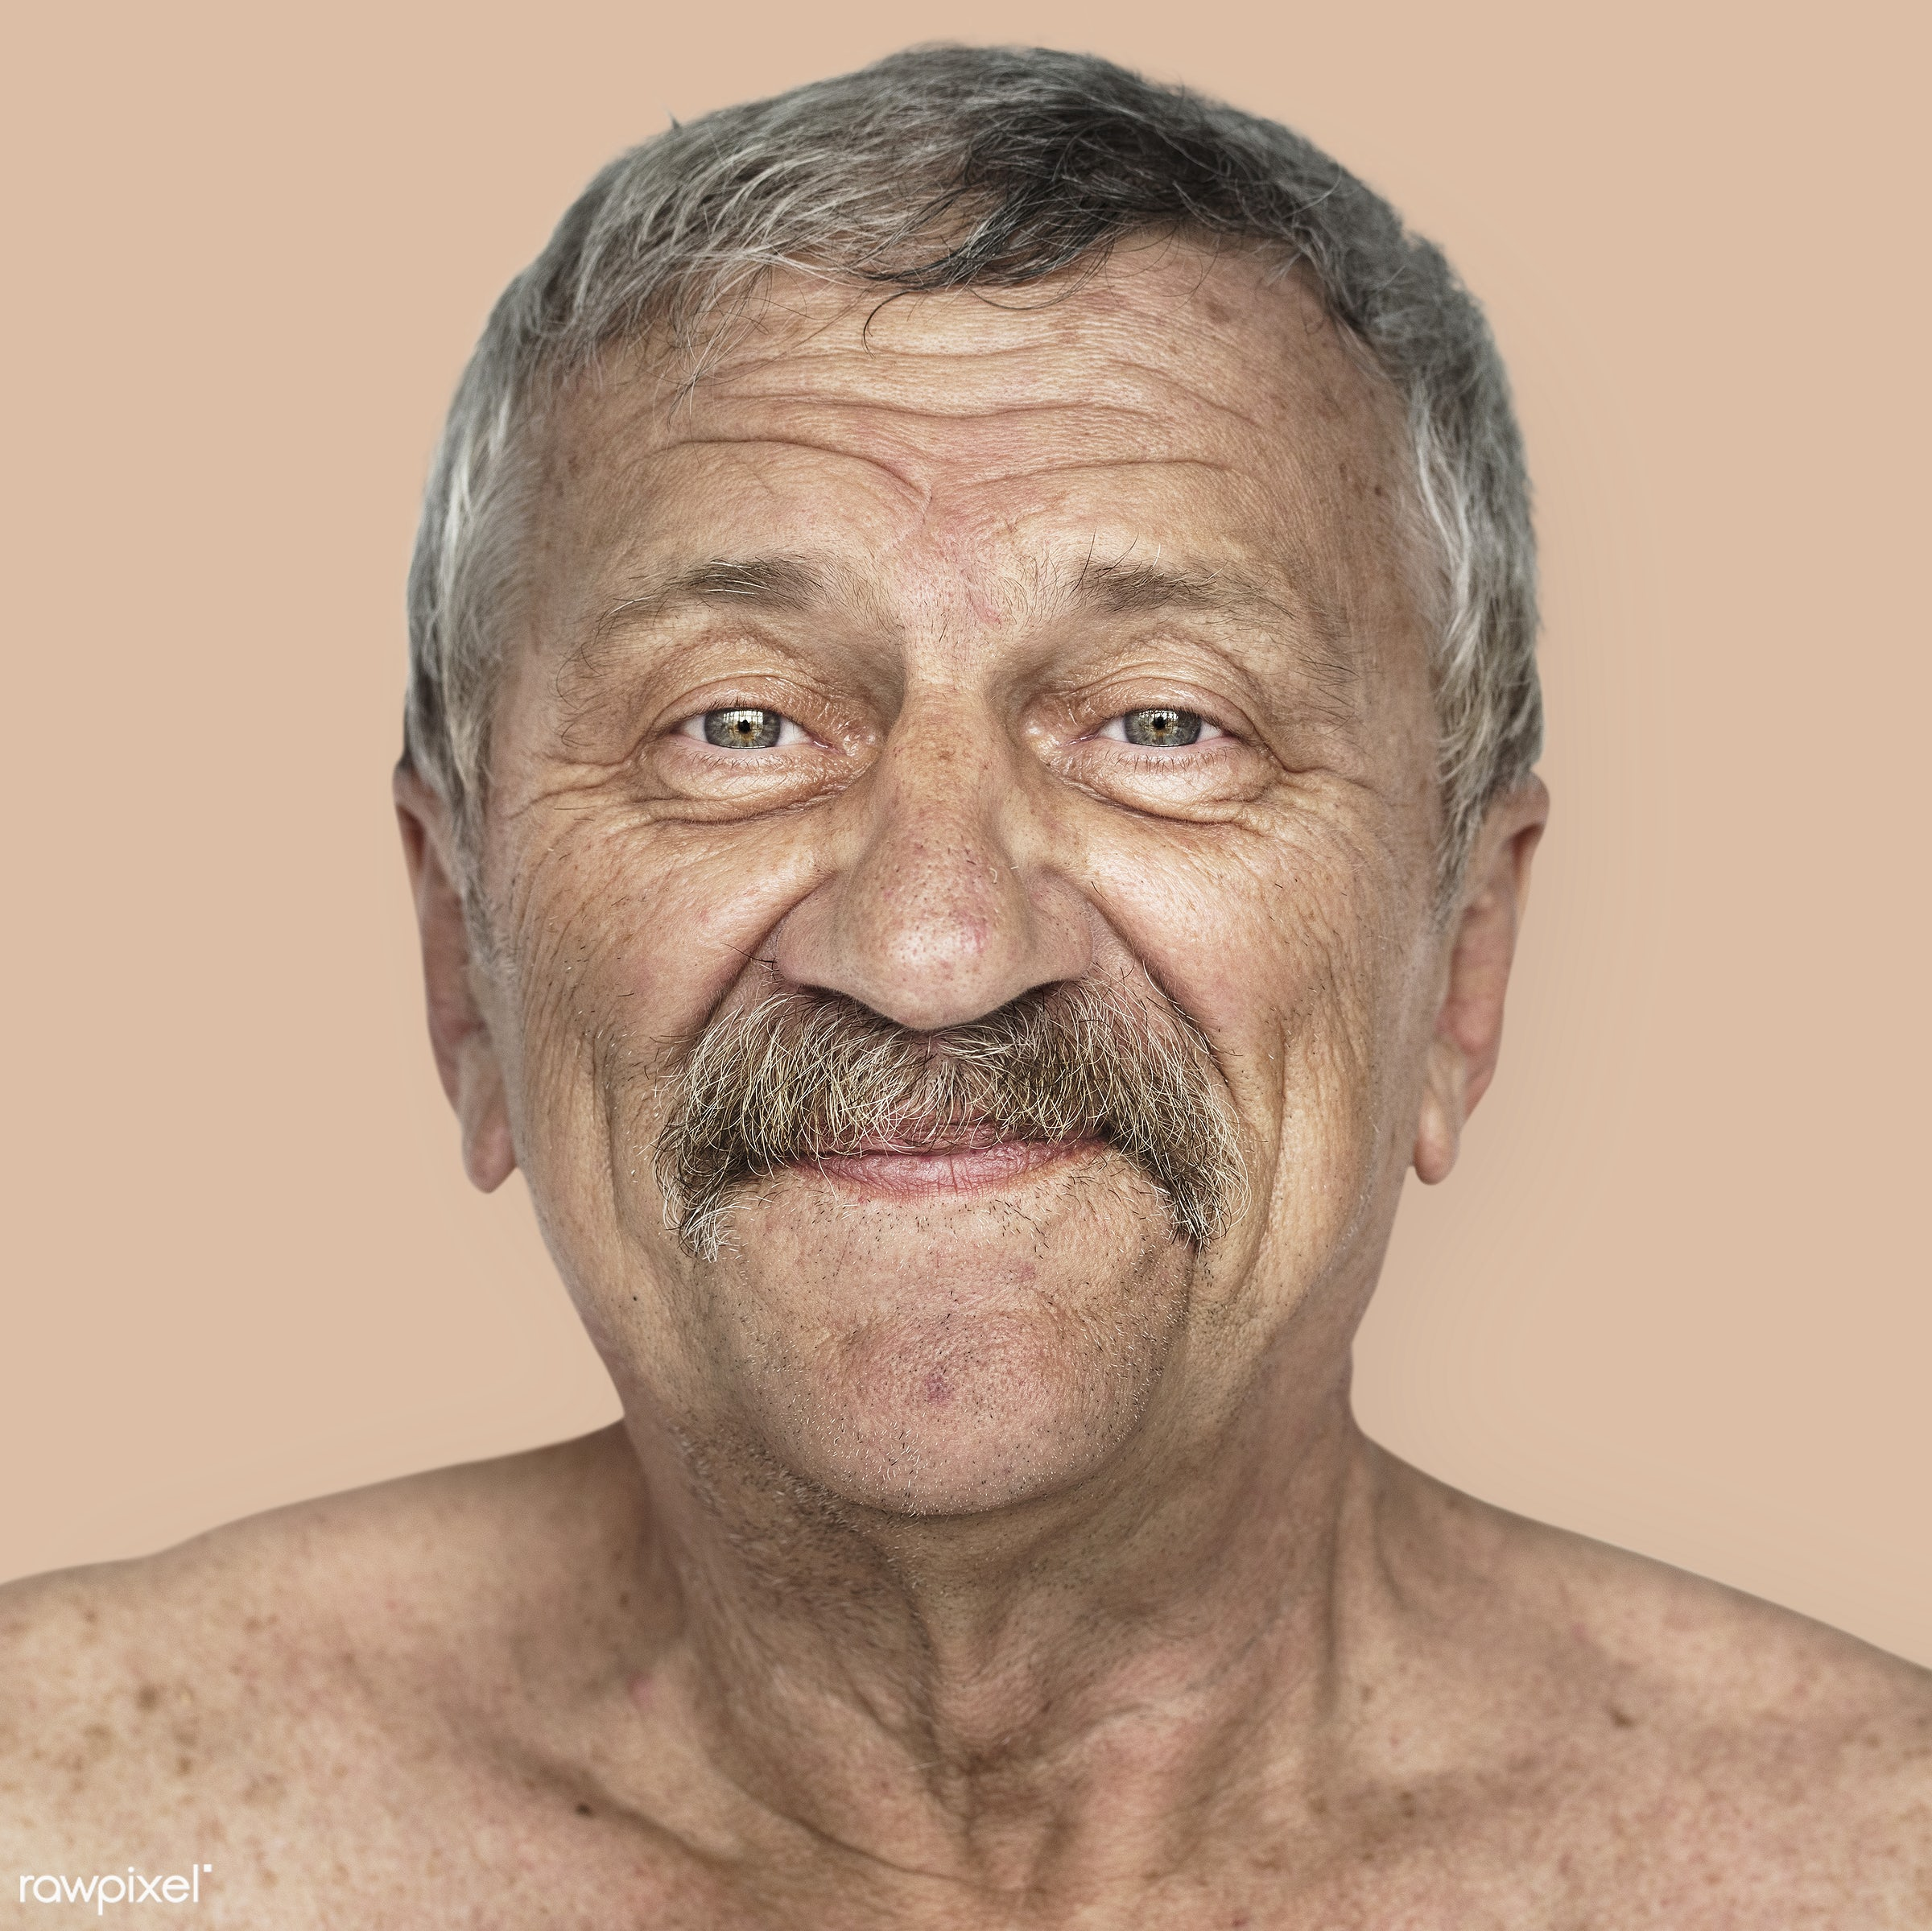 Portrait of an American man - america, american, close up, elderly, expression, face, guy, headshot, man, person, portrait,...